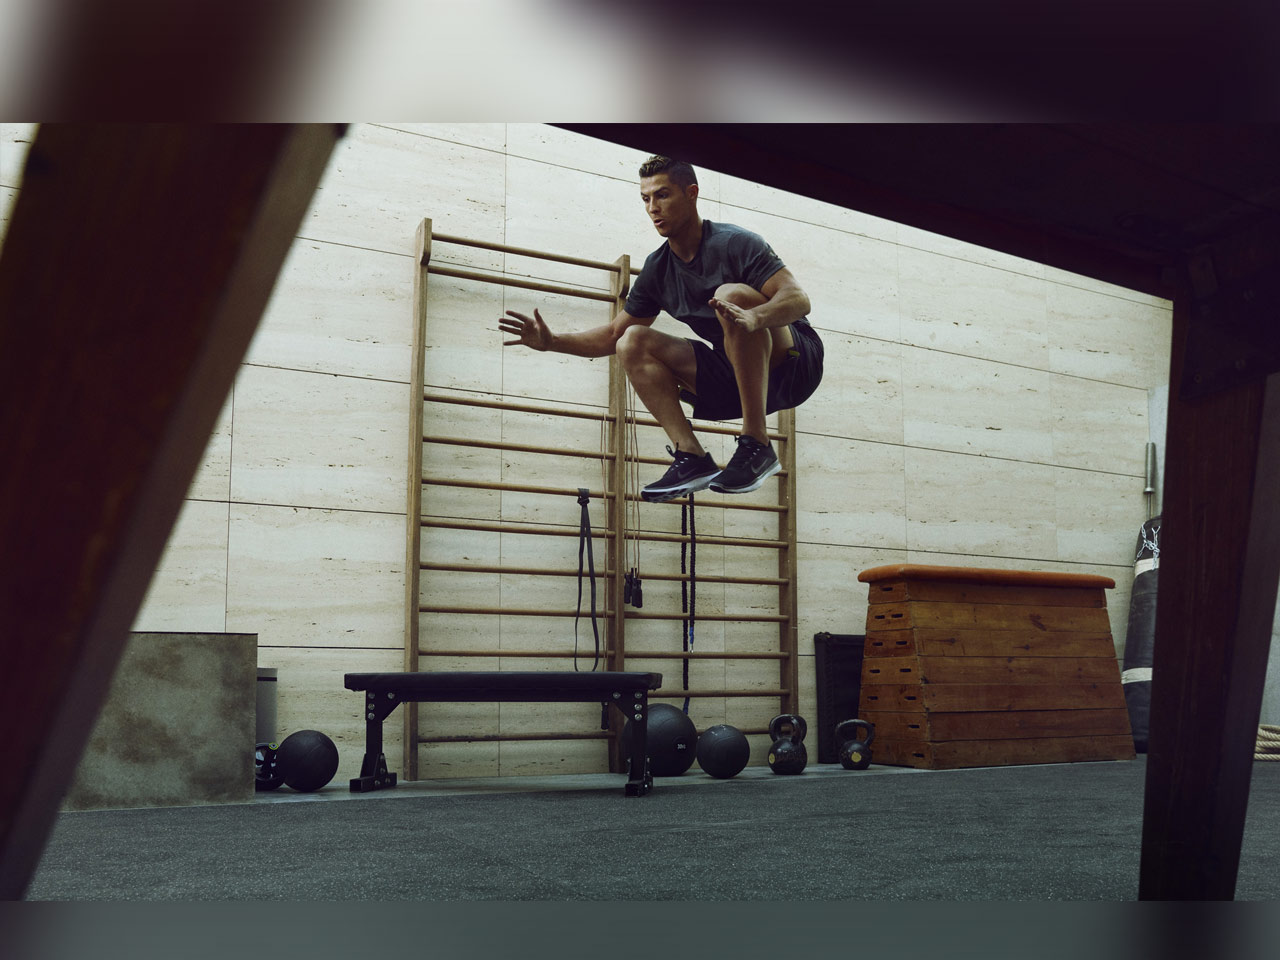 Cristiano Ronaldo S Legs Workout For Sculpted Quads And Explosive Power Muscle Fitness